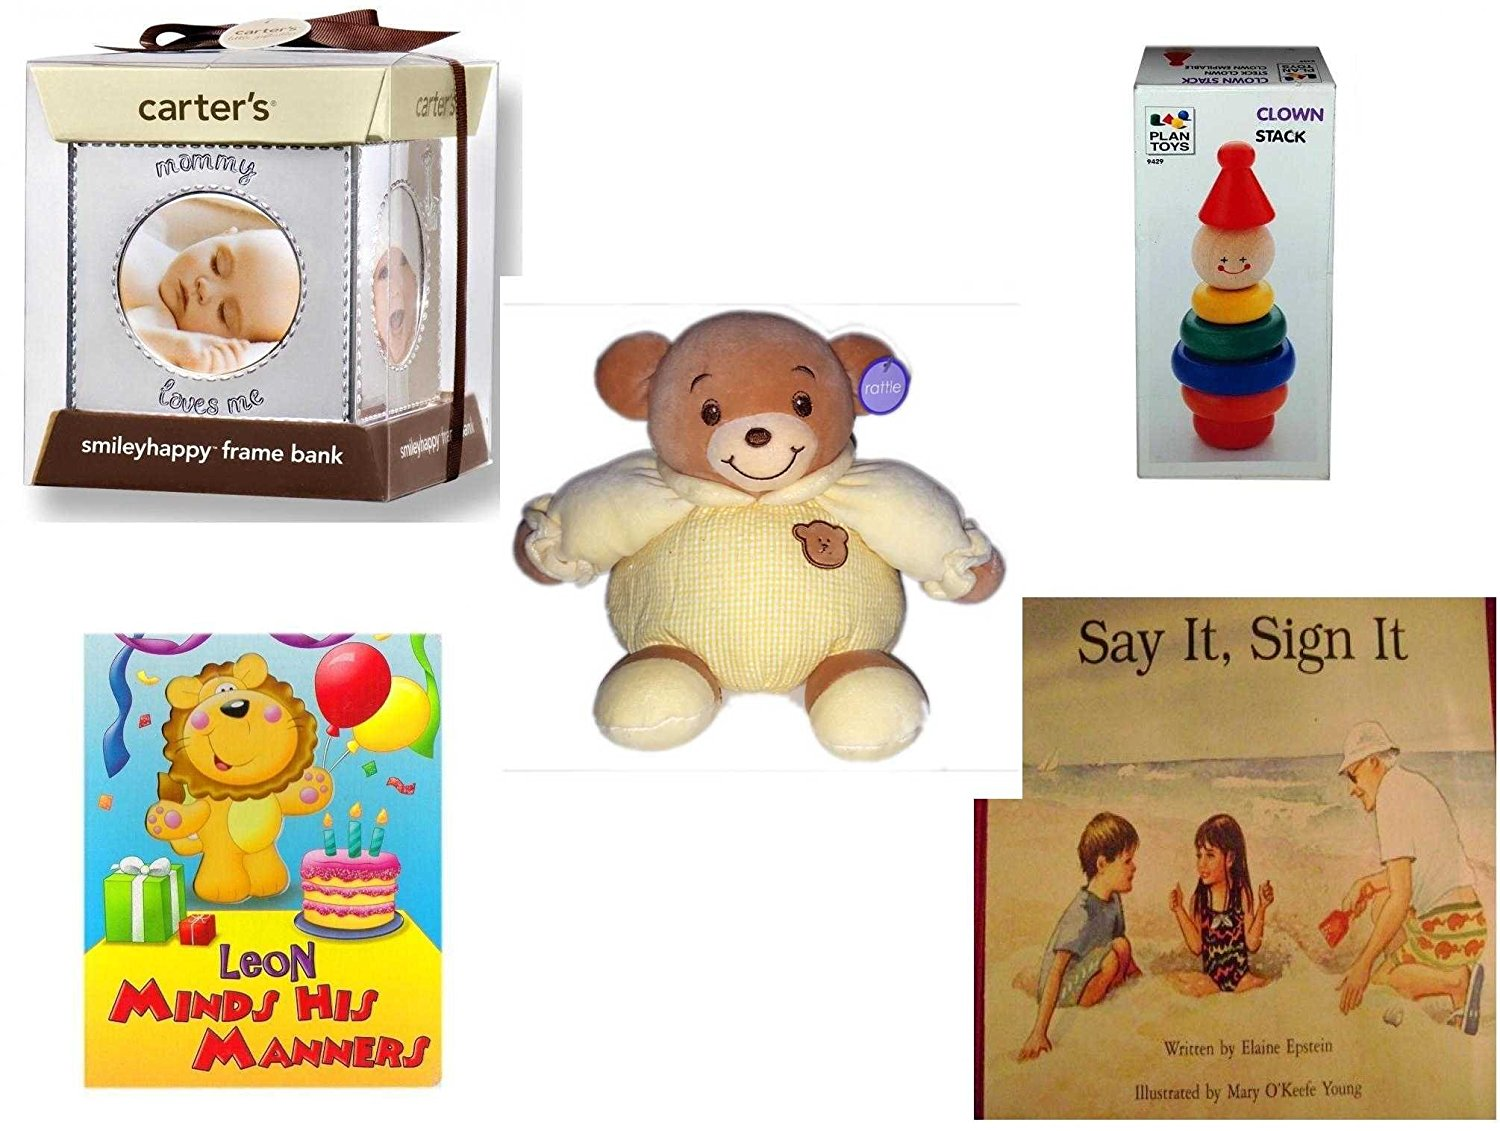 Children's Gift Bundle - Ages 0-2 [5 Piece] - Carter's Smily Happy Frame Bank, Silver - Clown Stack - Baby Bow Bear Rattle Plush - Leon Minds His Manners Board Book - Say It, Sign It